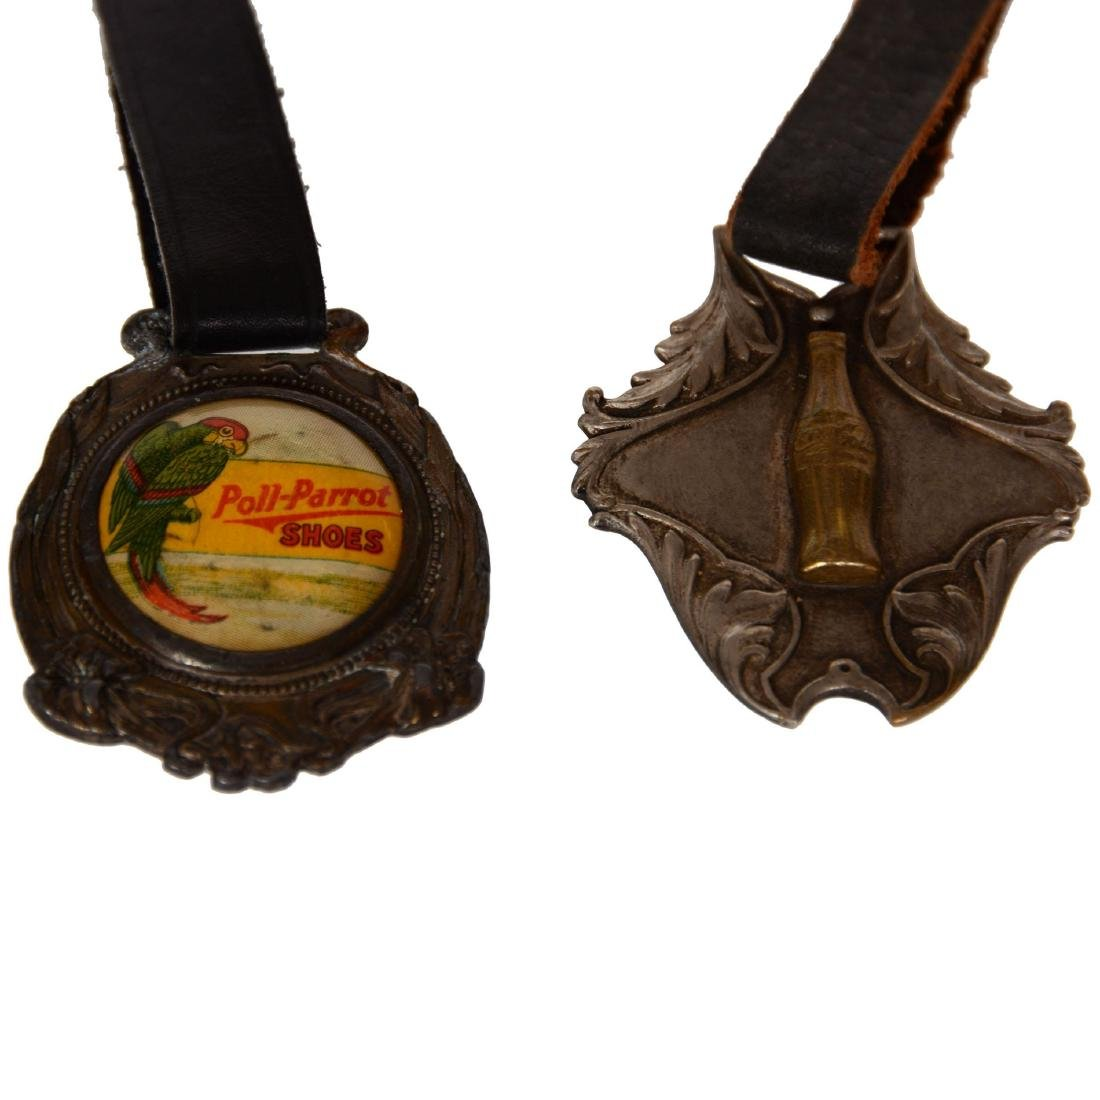 (2) Advertising Watch Fobs with Leather Straps - 3